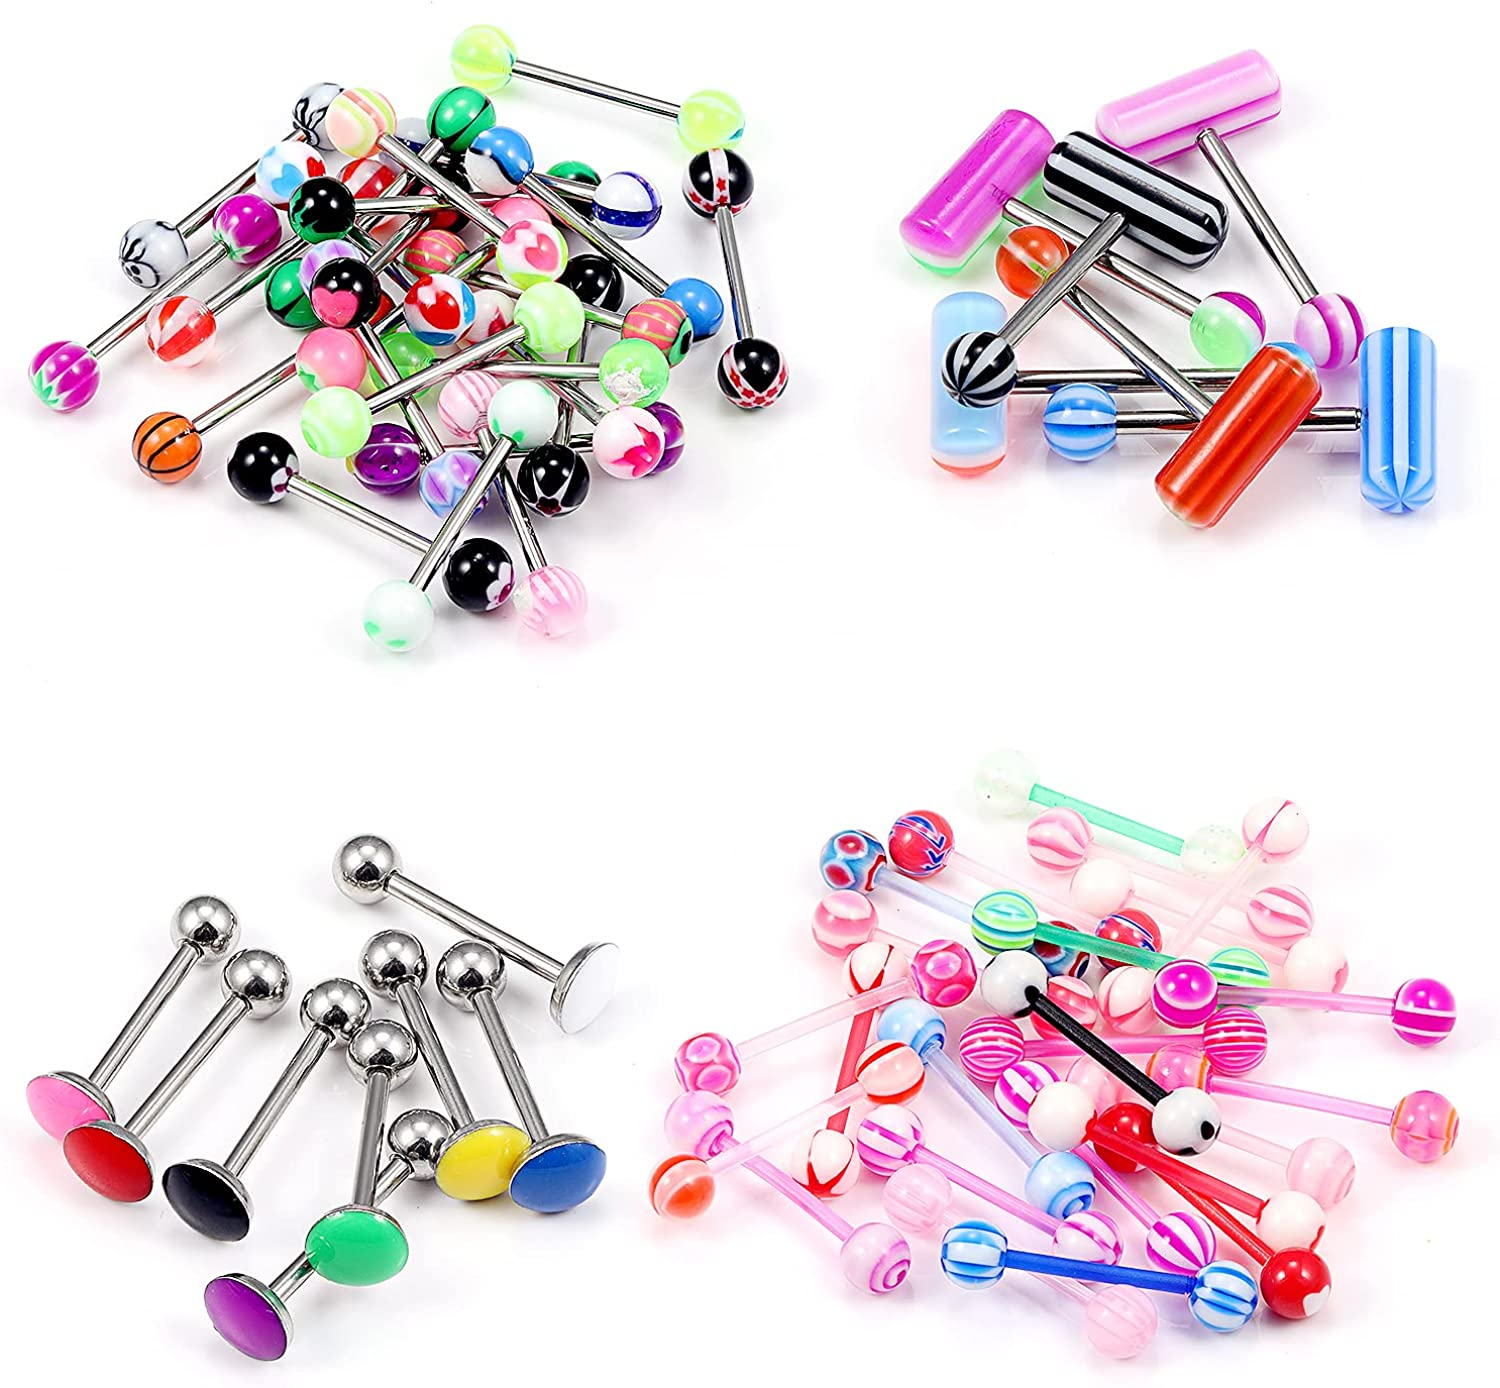 Leiainely Tongue Rings for Women Tongue Ring Tongue Piercing Jewelry Tongue Rings Surgical Steel Plastic Tongue Rings Clear Tongue Ring Tongue Rings for Men Tongue Jewelry Snake Bite Tongue Rings